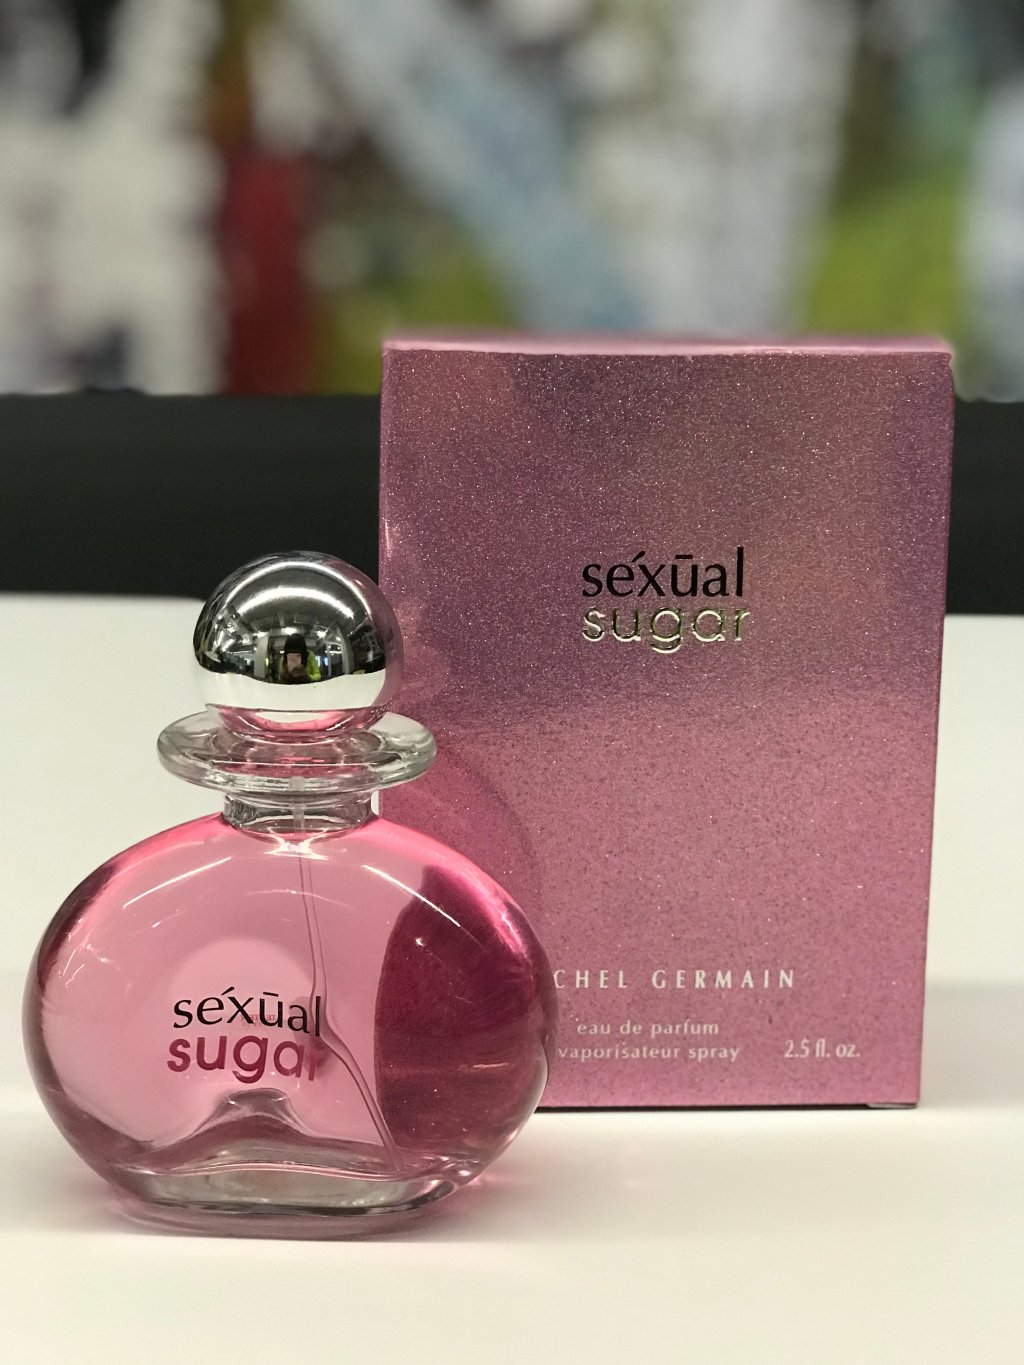 Sexual Sugar by Michel Germain